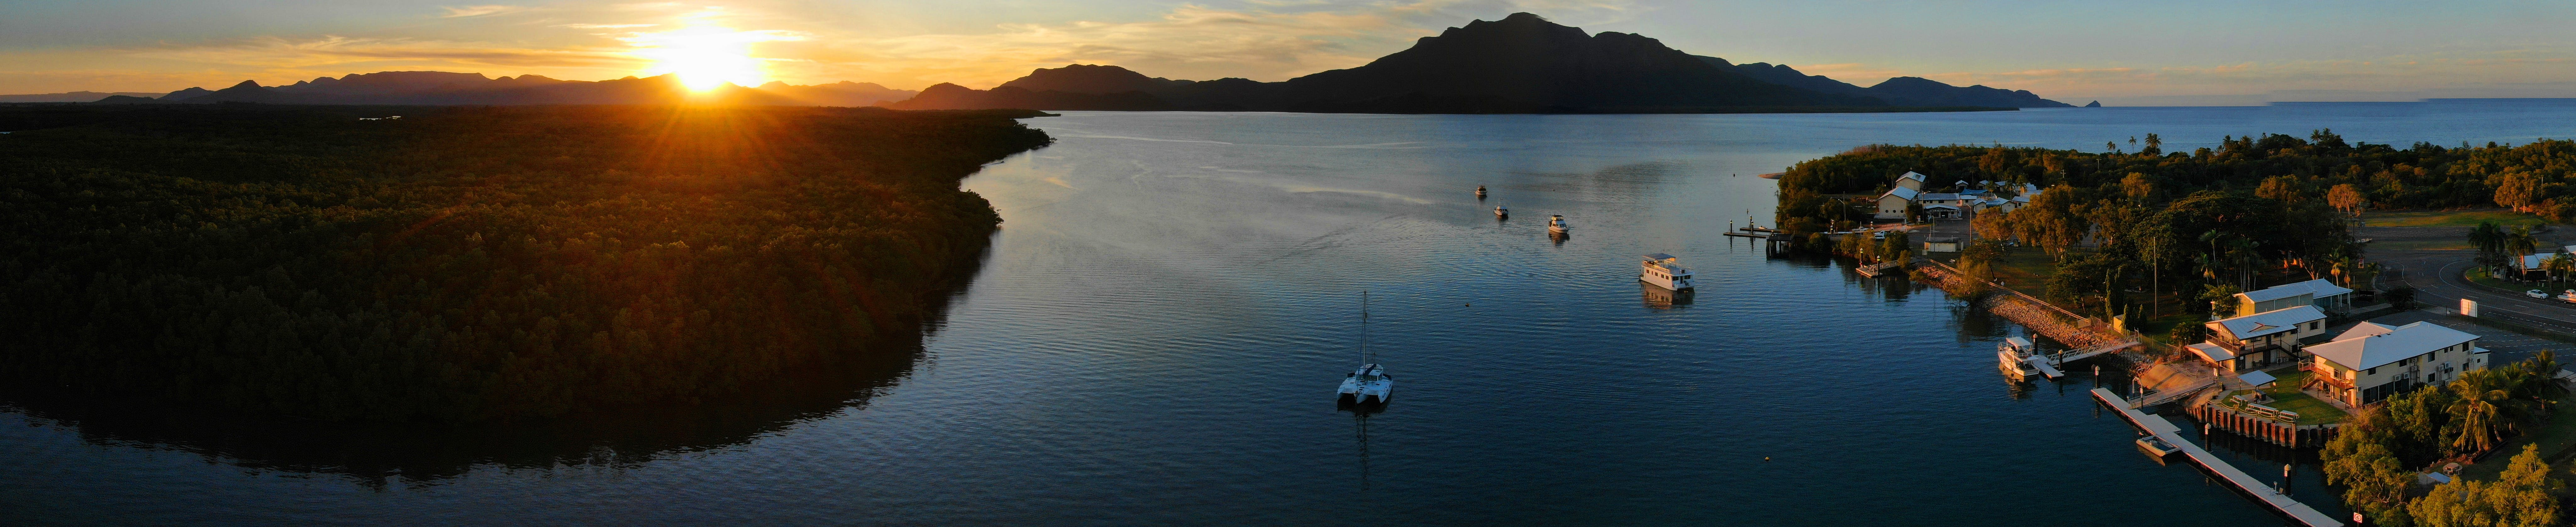 Hinchinbrook Marine Cove Resort - Kempsey Accommodation